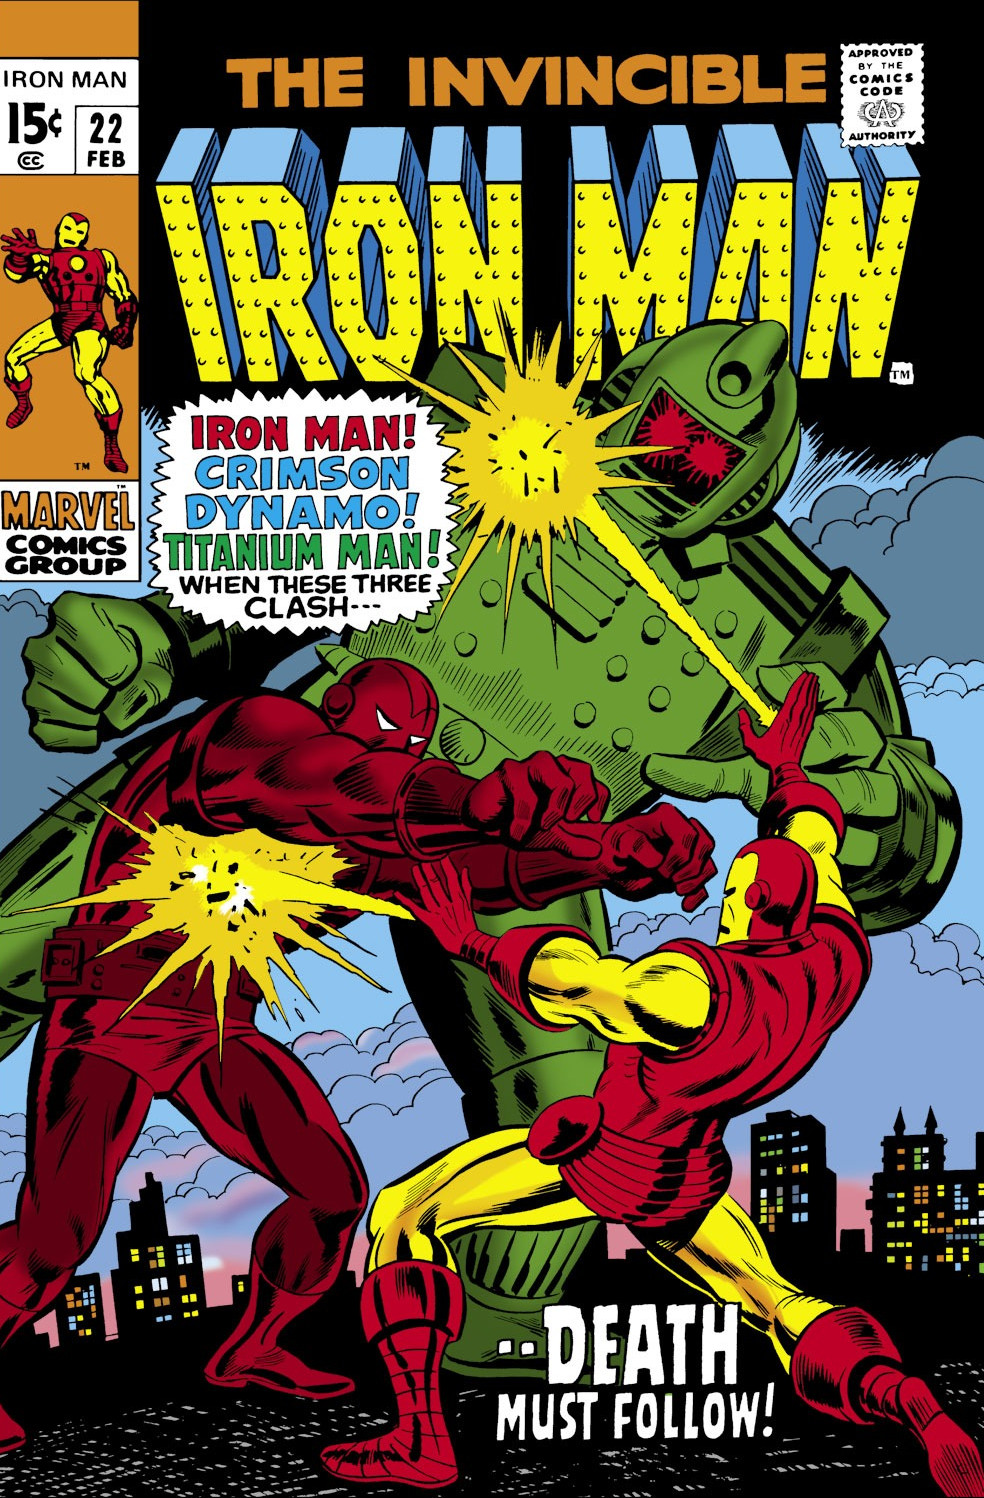 Iron Man Vol 1 22 | Marvel Database | FANDOM powered by Wikia